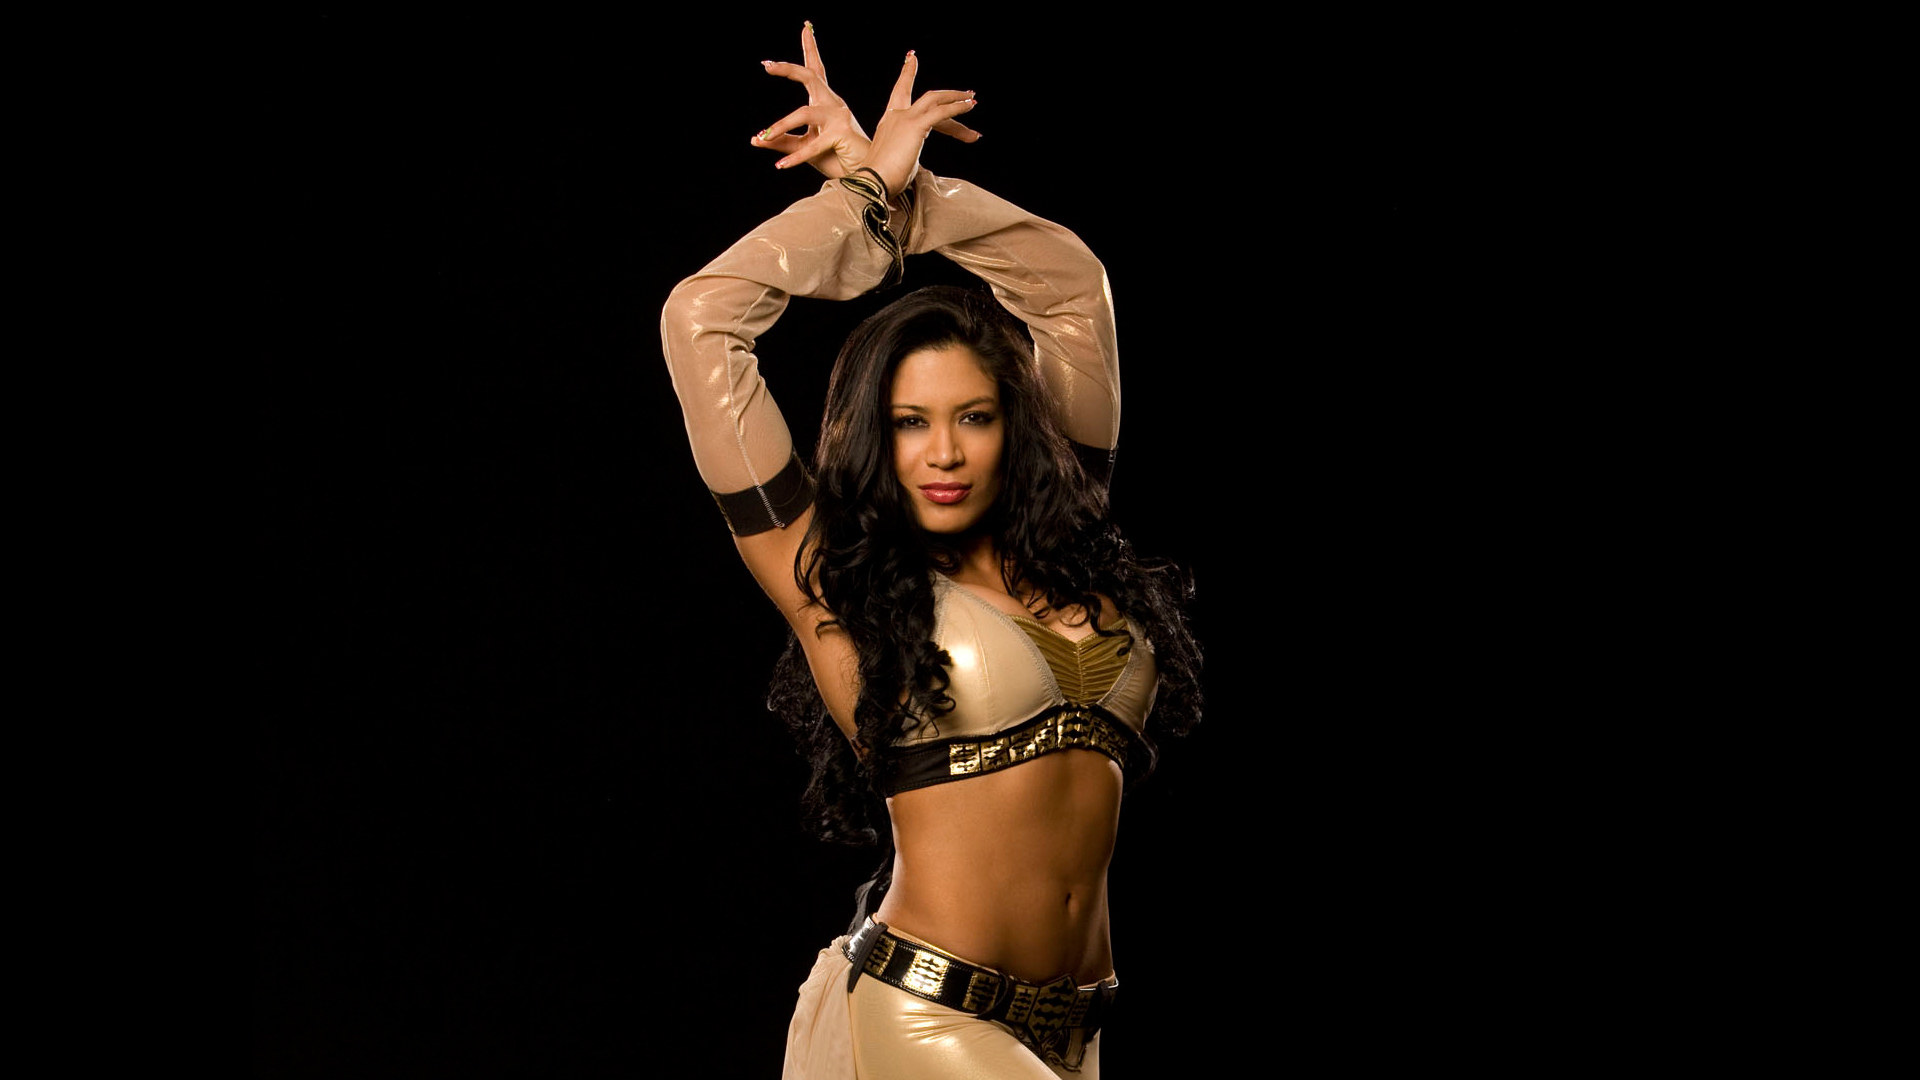 meLina - Melina Perez Wallpaper (16288379) - Fanpop fanclubs